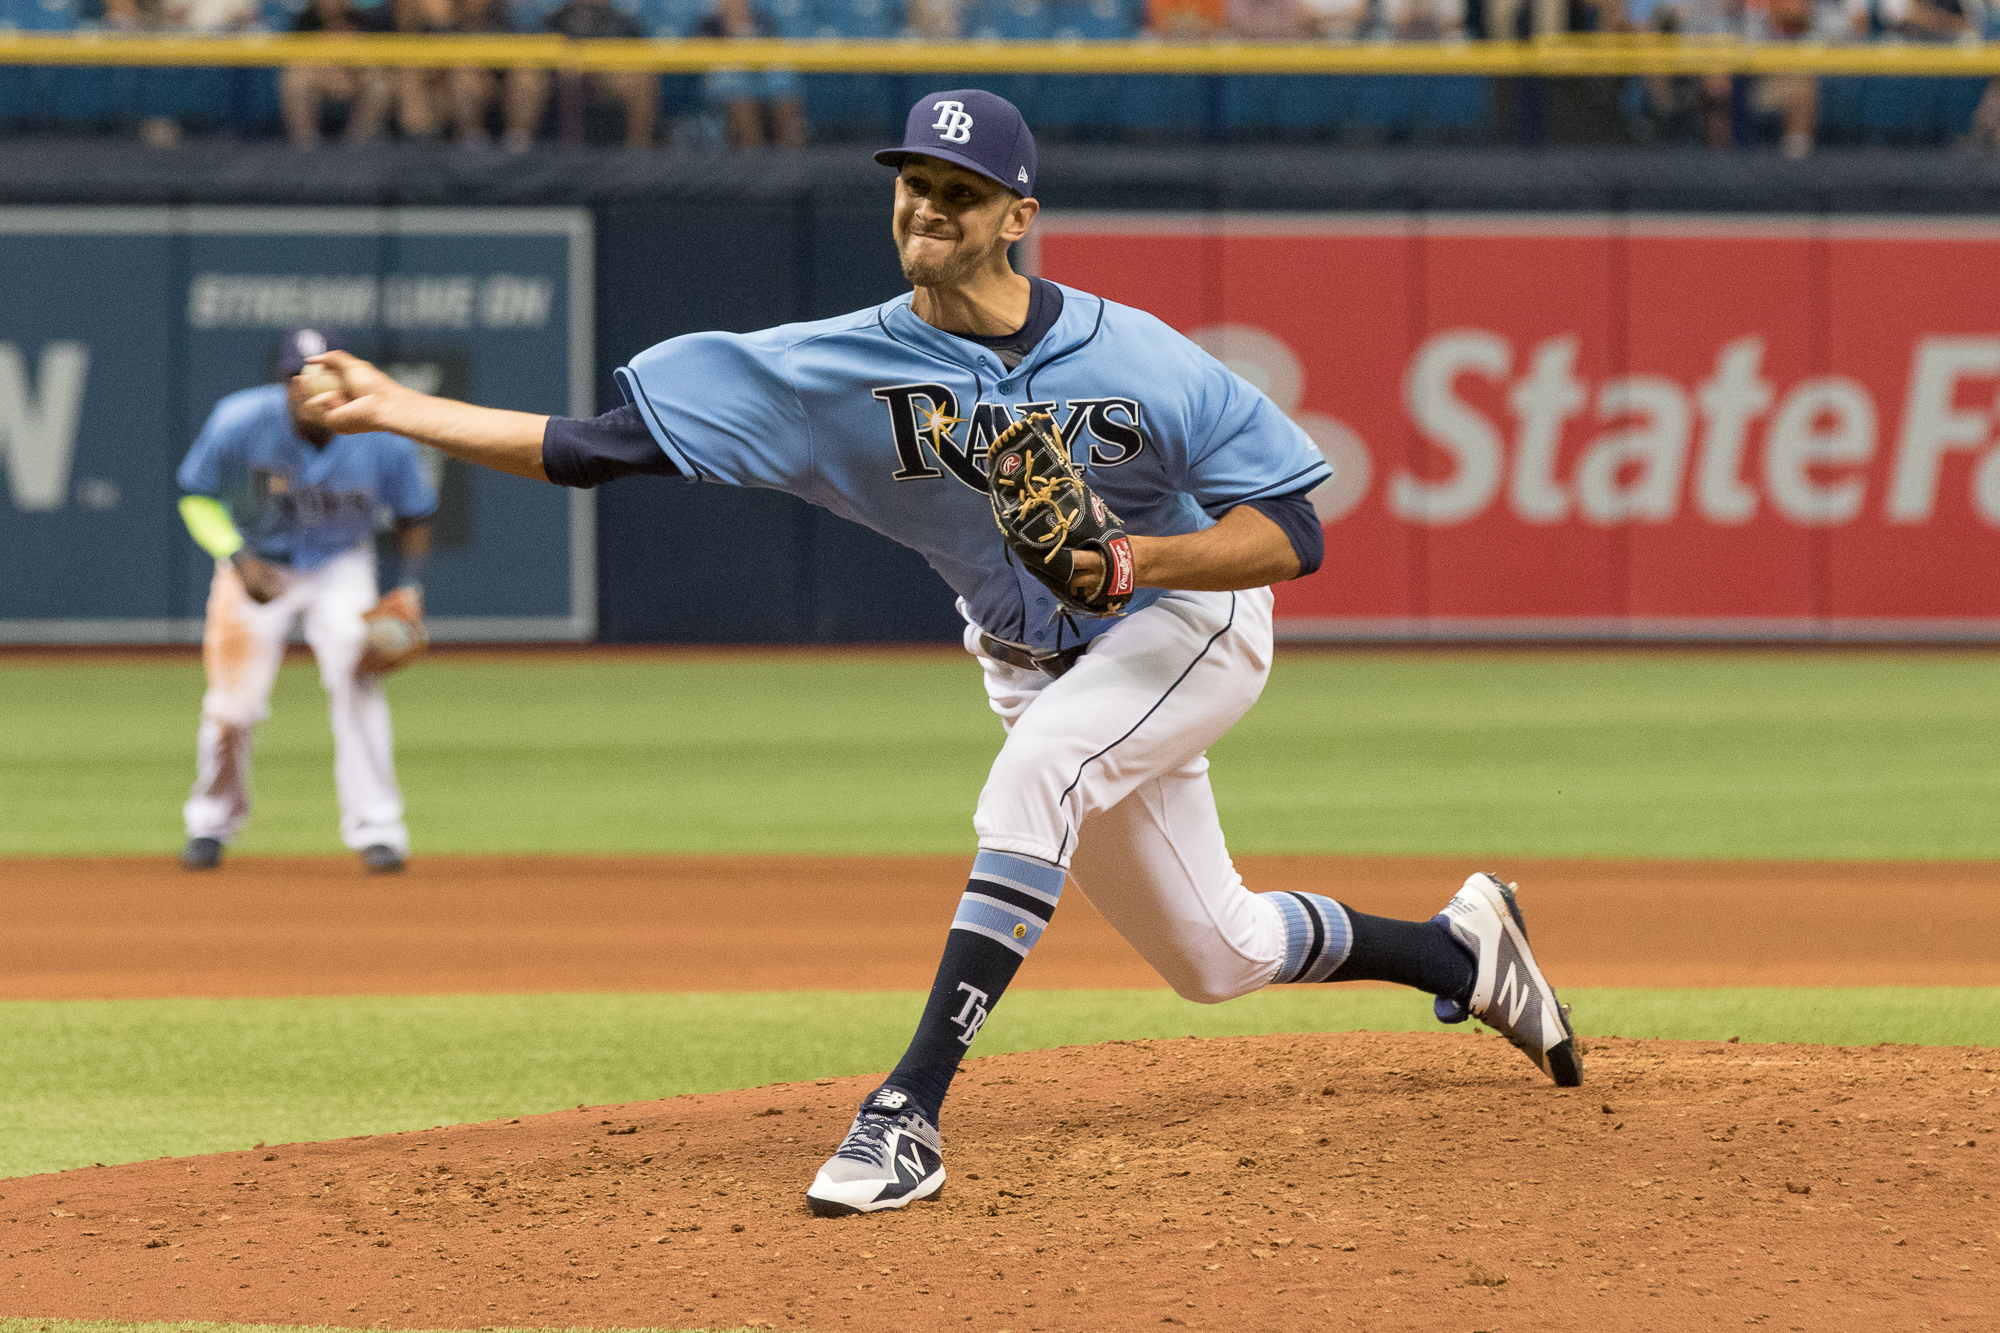 Steve Cishek had another scoreless appearance../STEVEN MUNCIE